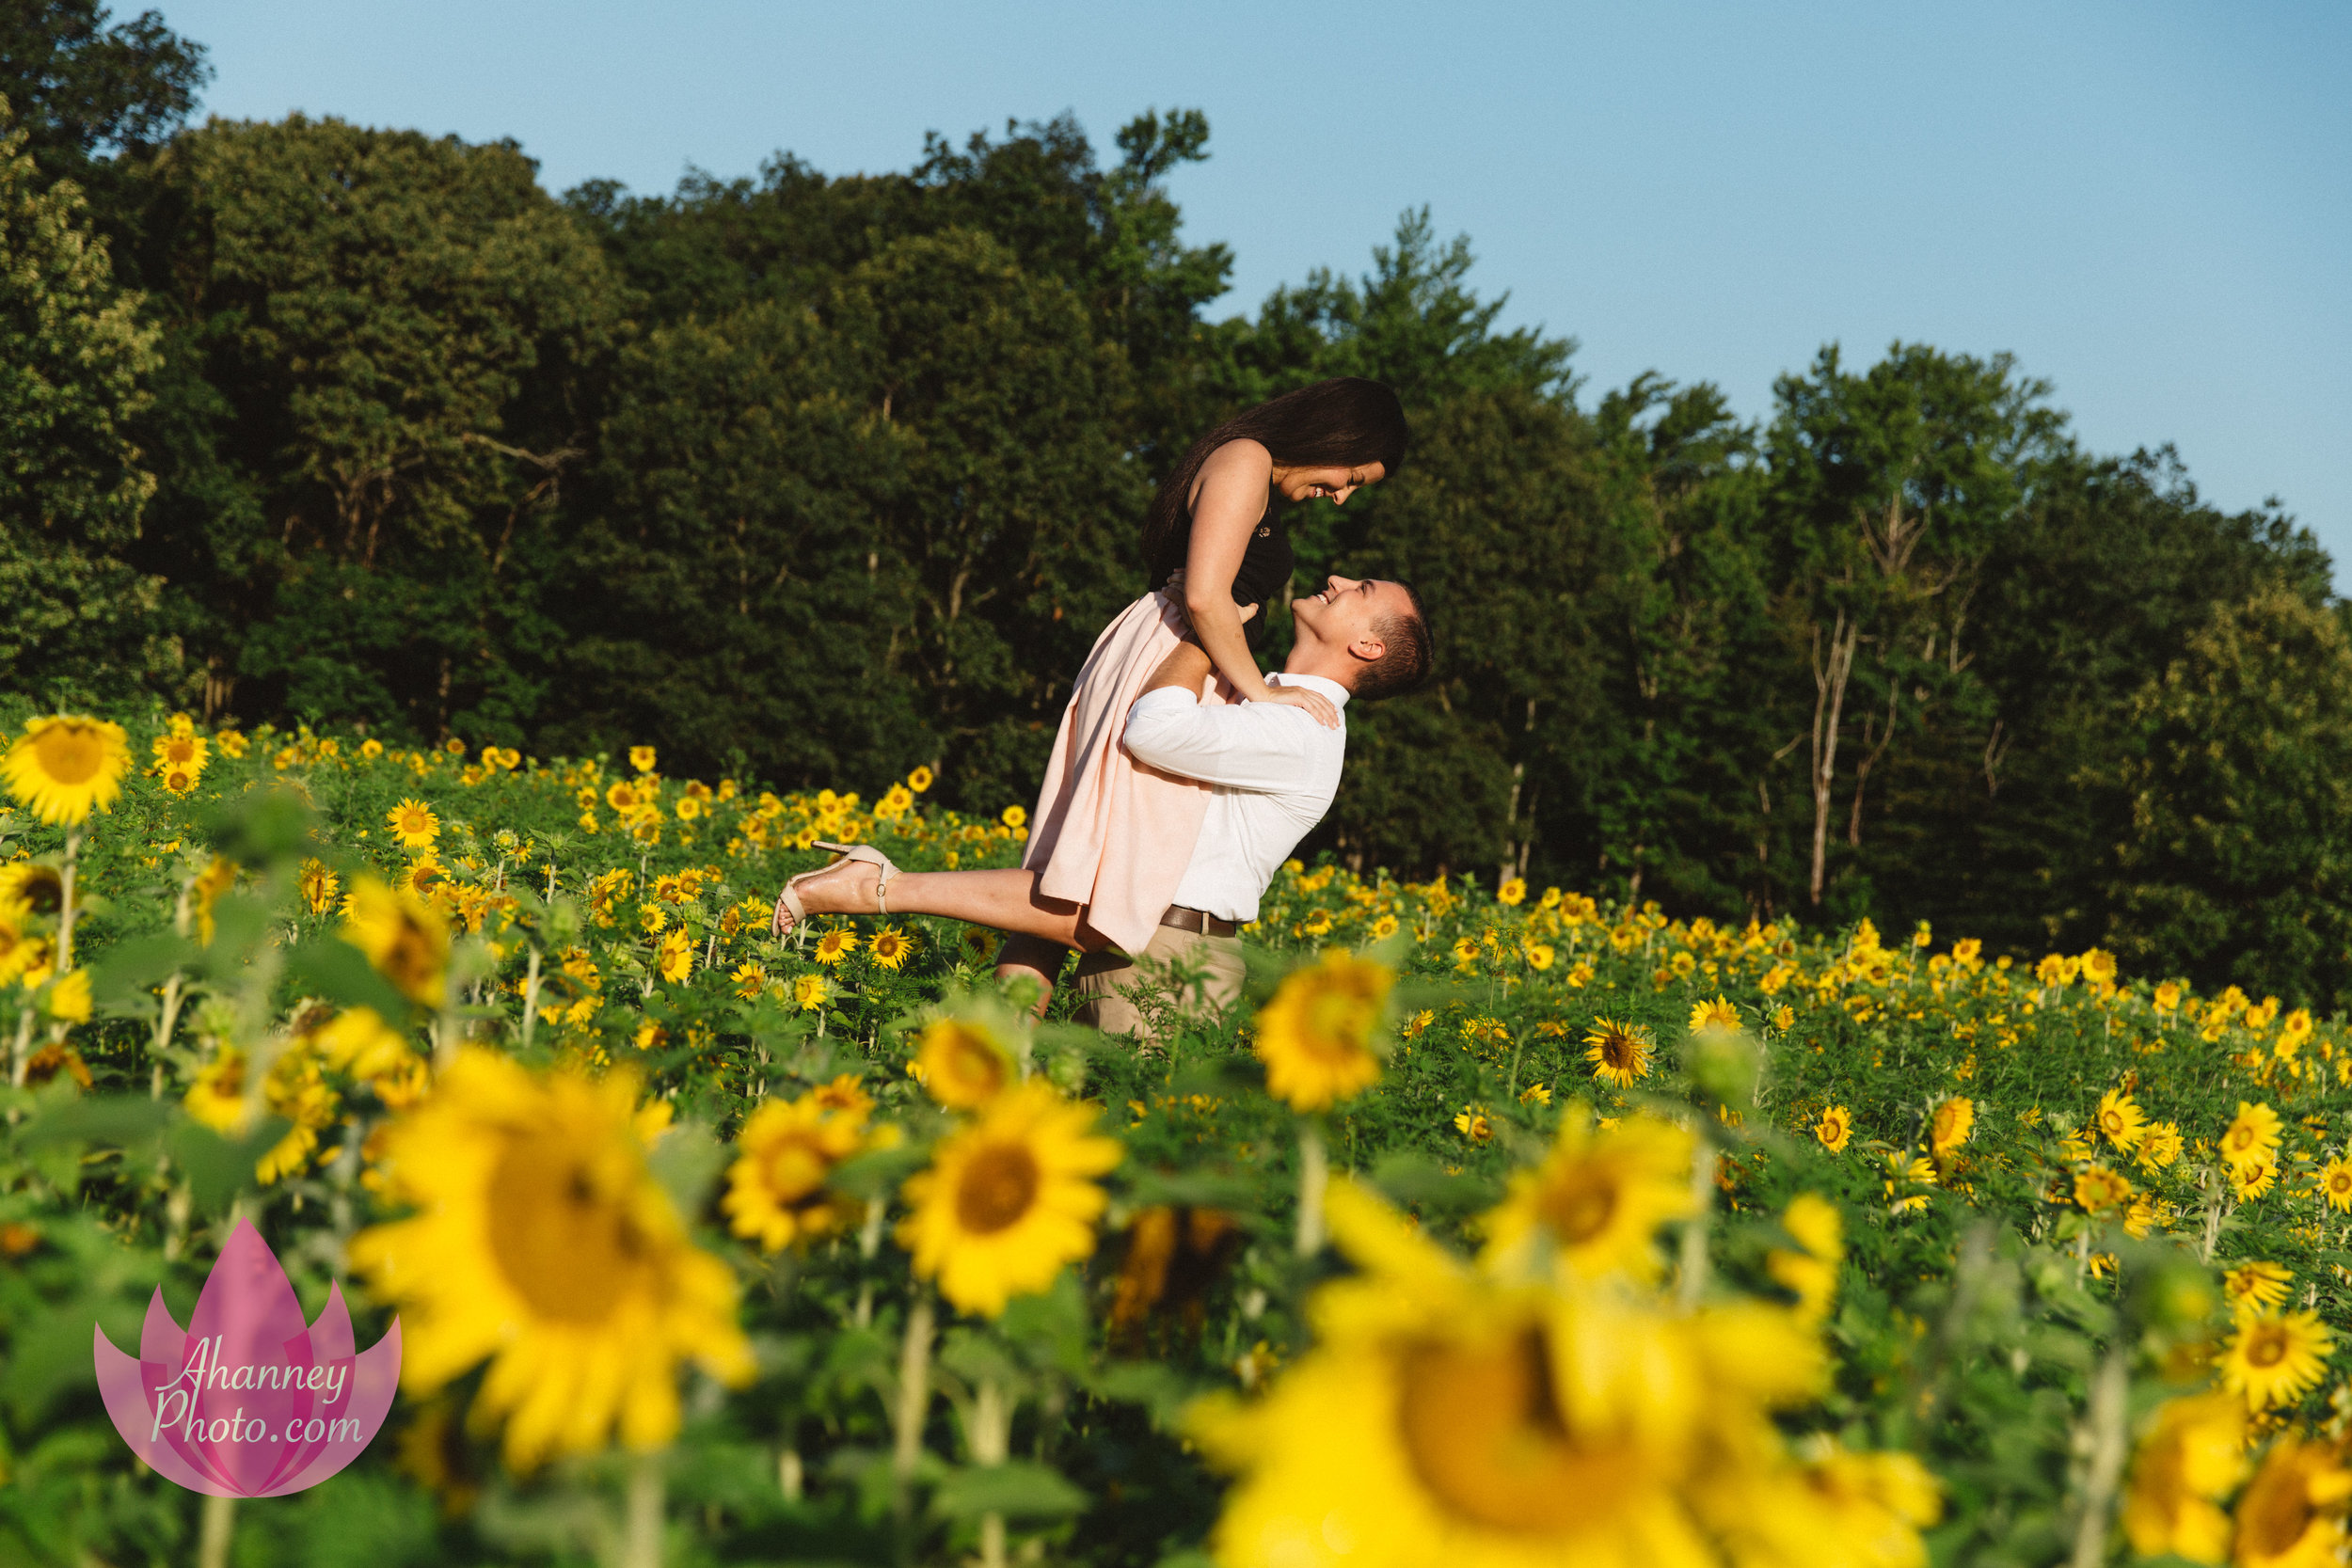 Engagement Photographer in Cape May New Jersey in Sunflower Field She Said Yes